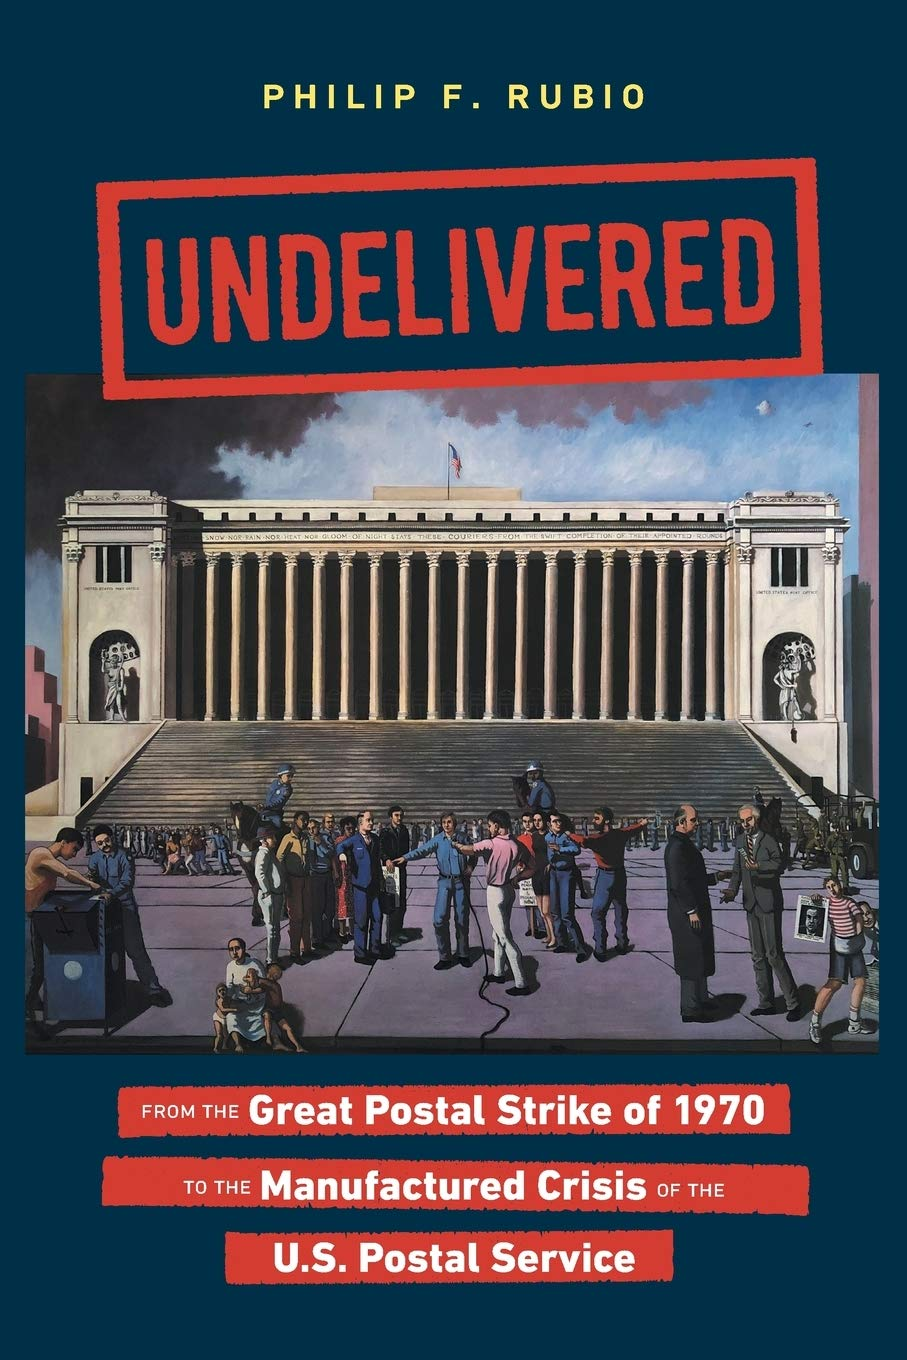 Undelivered: From The Great Postal Strike Of 1970 To The Manufactured Crisis Of The U.S. Postal Service